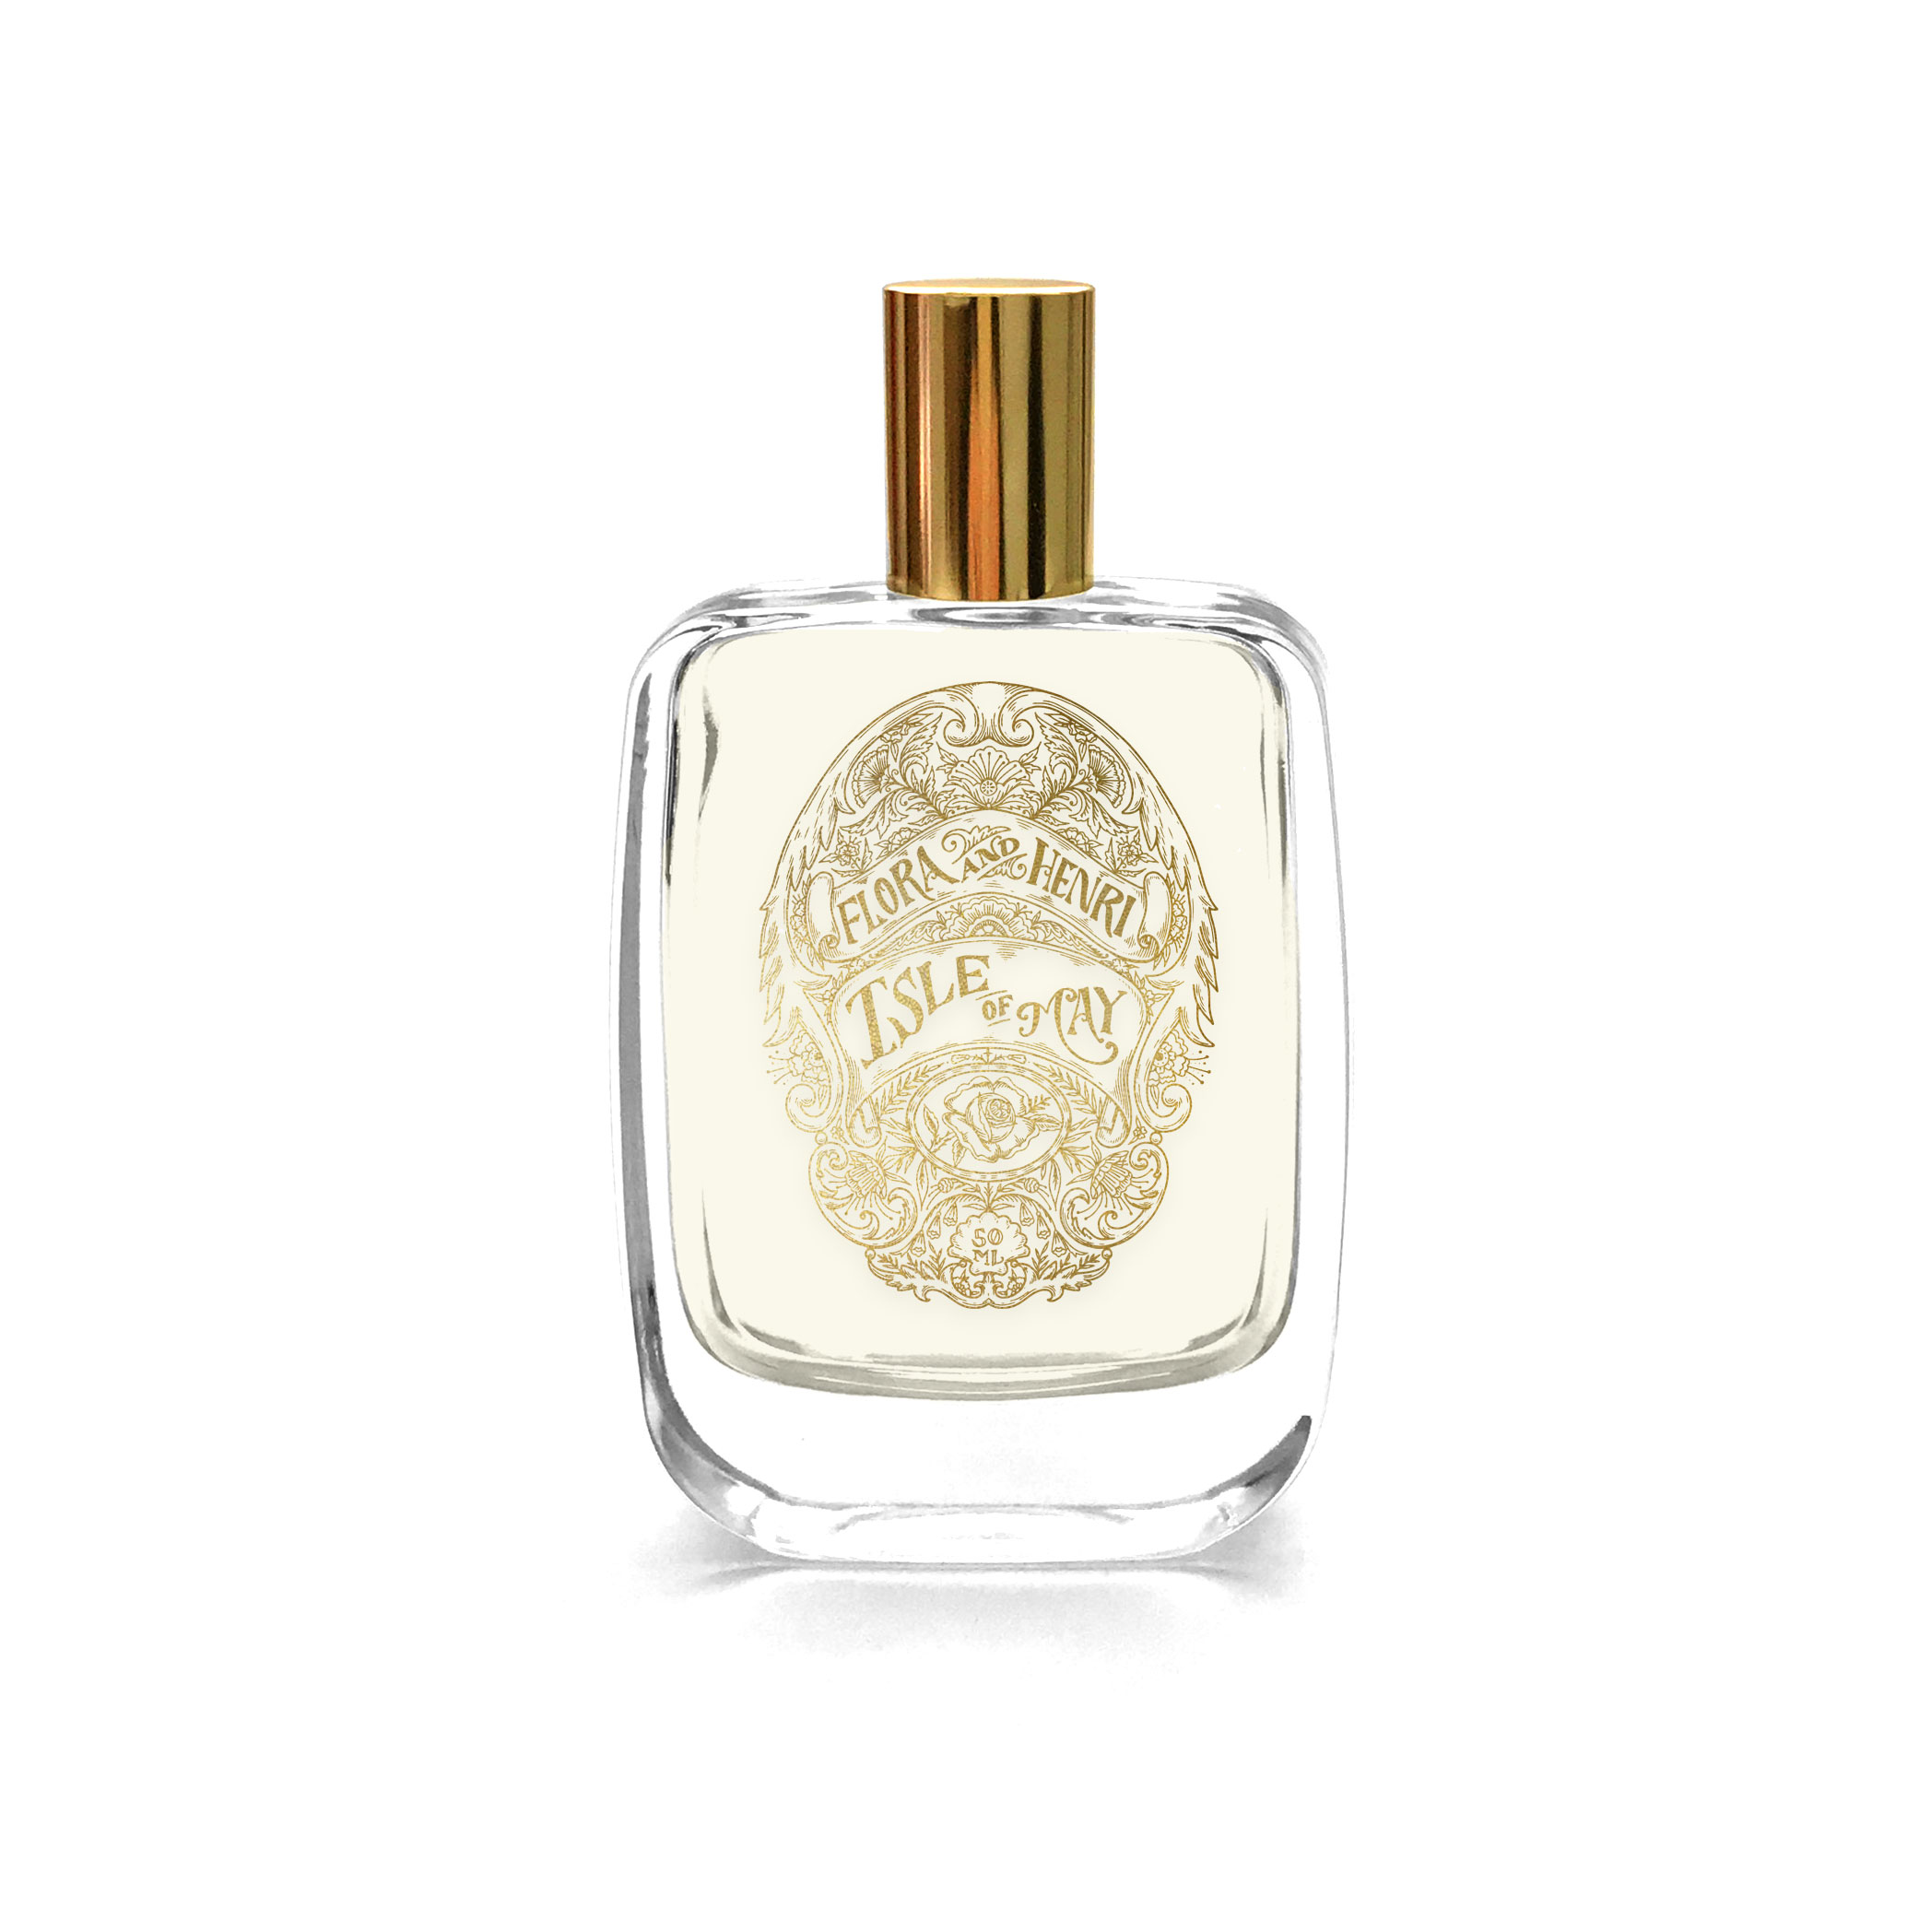 <p>Perfume - $30+. This 'Isle of May - Perfume by flora &amp;amp; henri' is heaven in a bottle. A perfect gift for your significant other. She'll love it! Prices range from $30-$250 depending on size. Purchase locally at flora and henri, 401 First Ave. S. Seattle, WA 98104. (Image: flora &amp;amp; henri){&amp;nbsp;}<br></p><p></p>